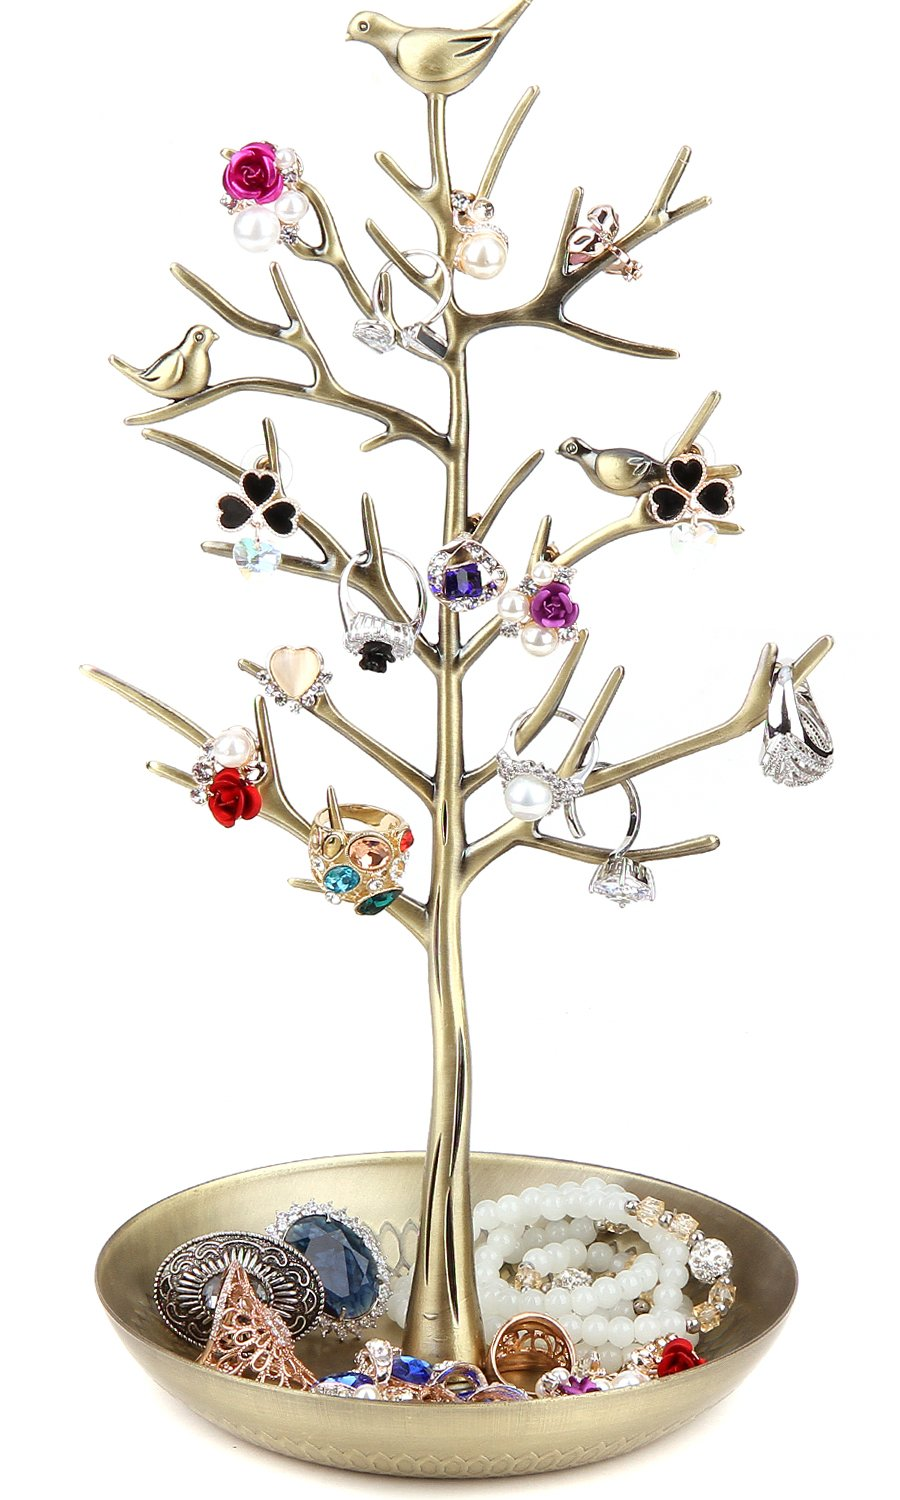 WELL-STRONG Earring Ring Holder Necklace Bird Decoration Jewelry Tower Tree for Girl Gold by WELL-STRONG